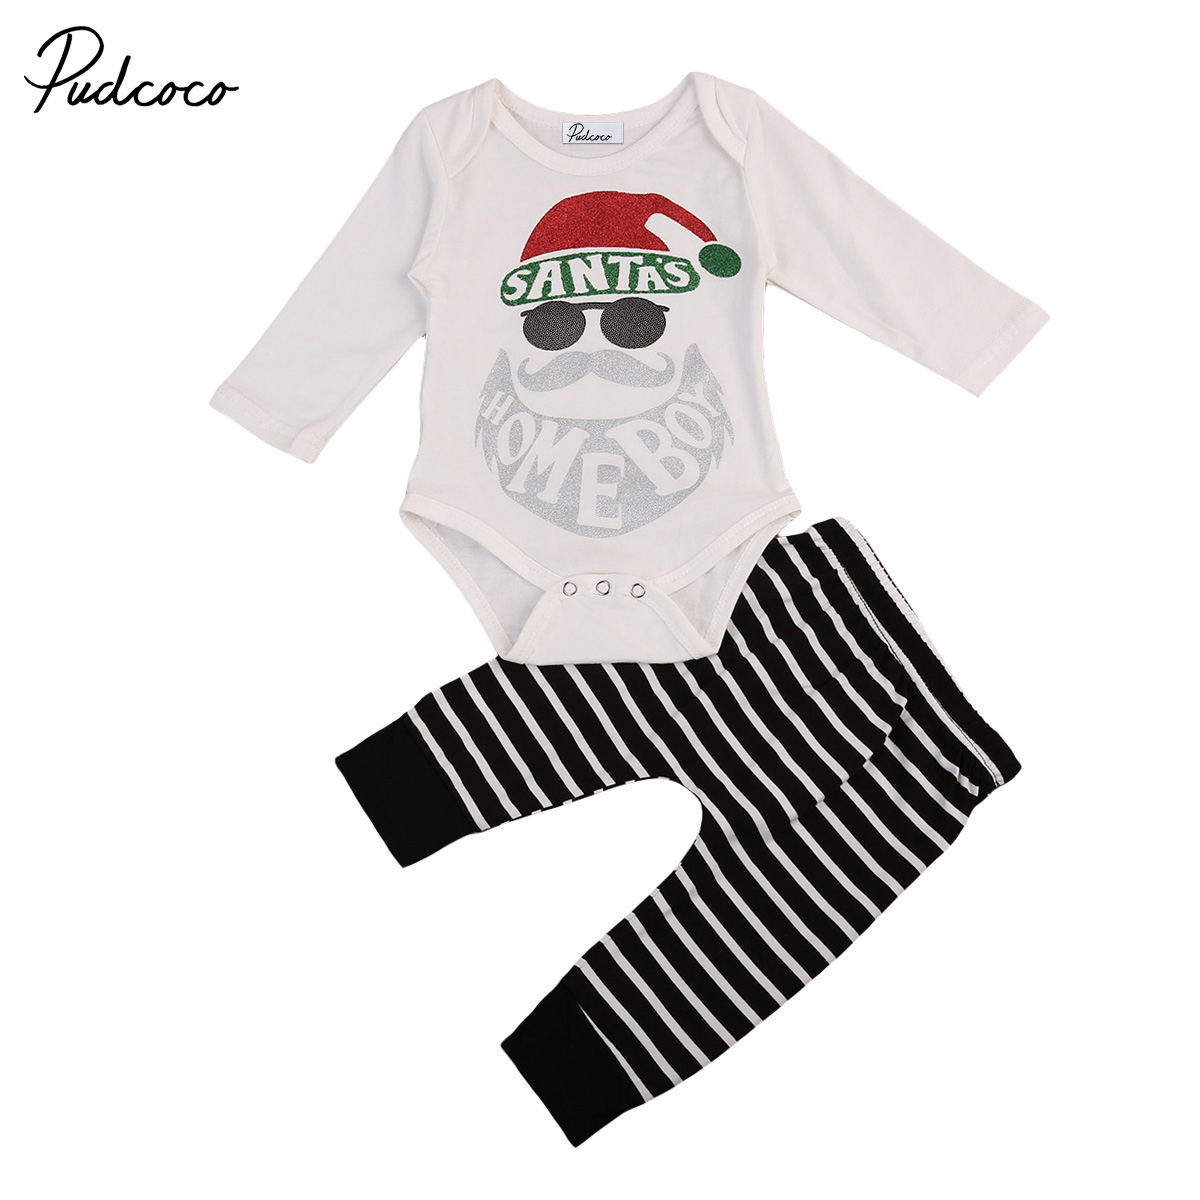 Newborn Baby Boys Long Sleeve Romper Tops Striped Pants Outfit Christmas Clothes